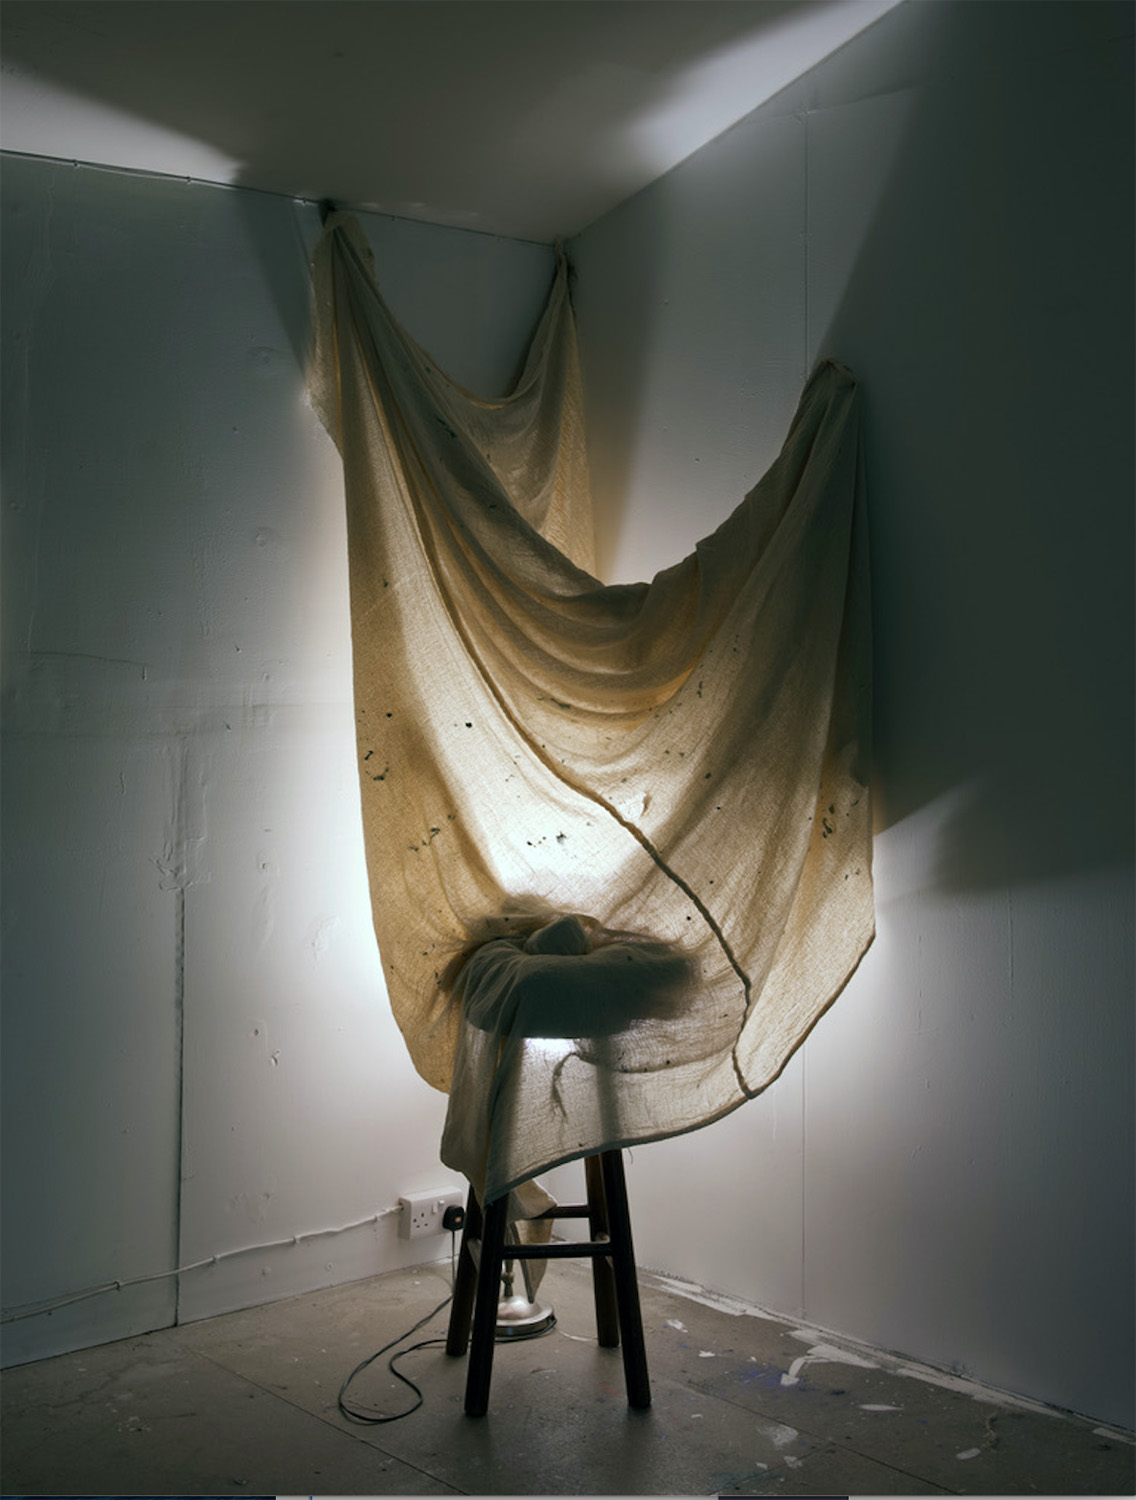 seat draped with cloth and light behind it